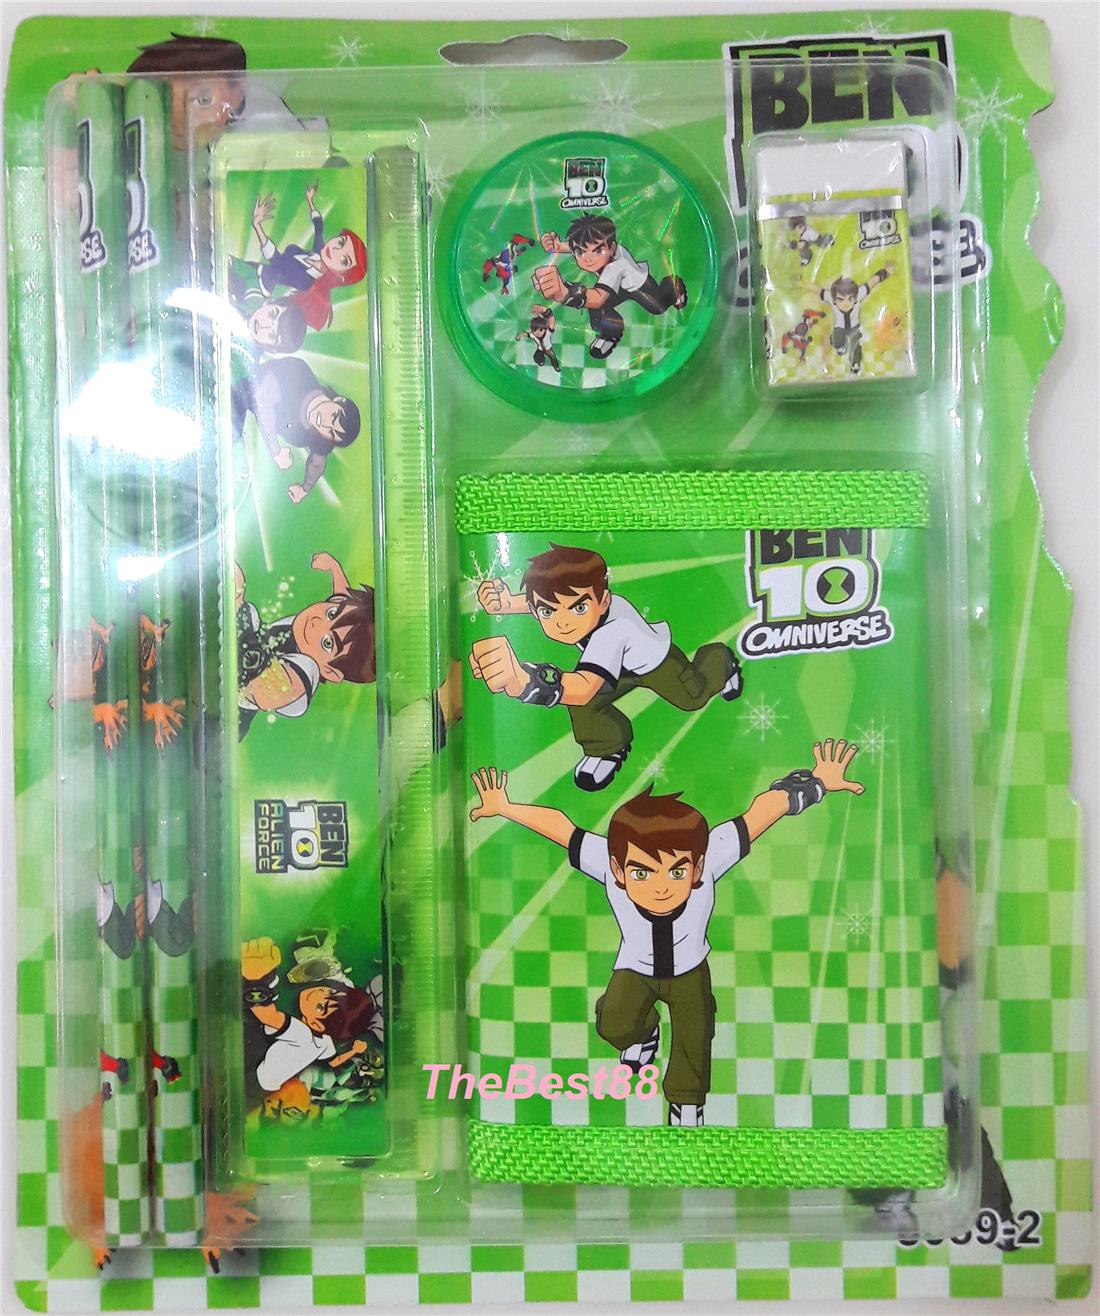 BEN10 Stationery Set 6 In 1 for Kids Birthday Present, Gift SS884BE